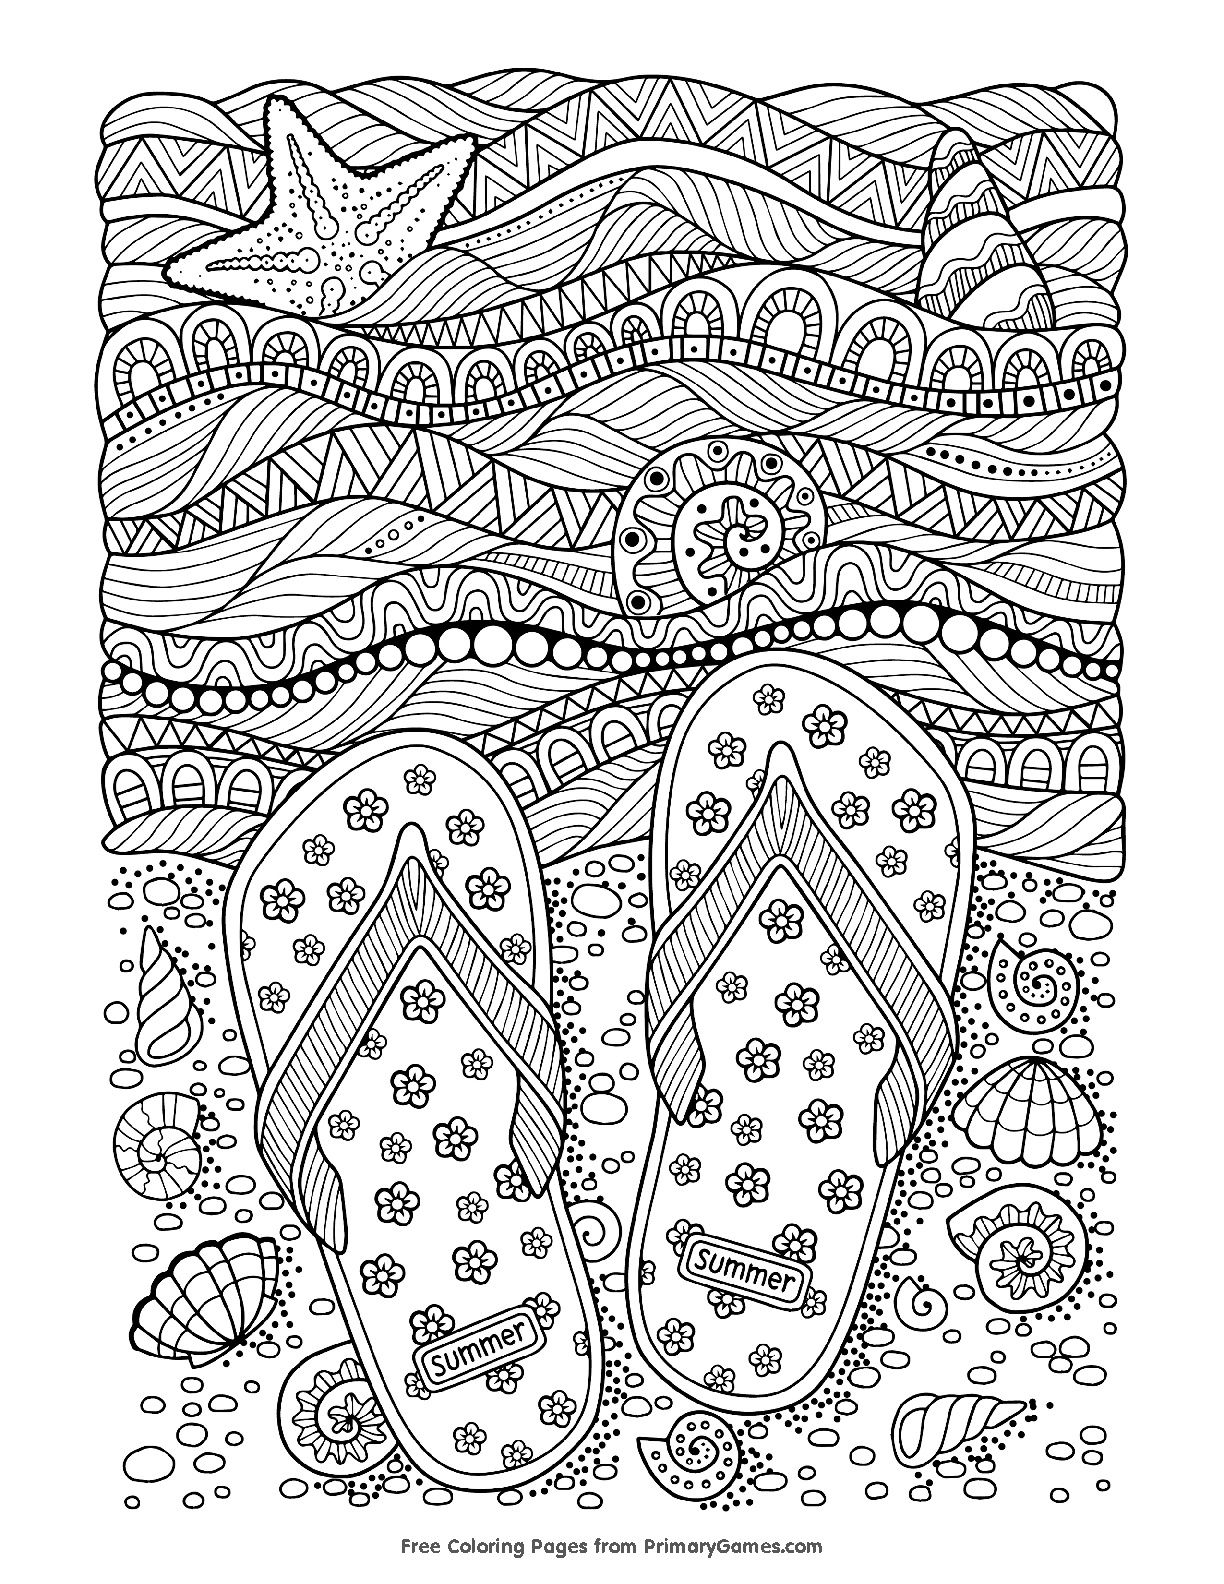 Beach flip-flops adult coloring page sheet. | Manualidades ...